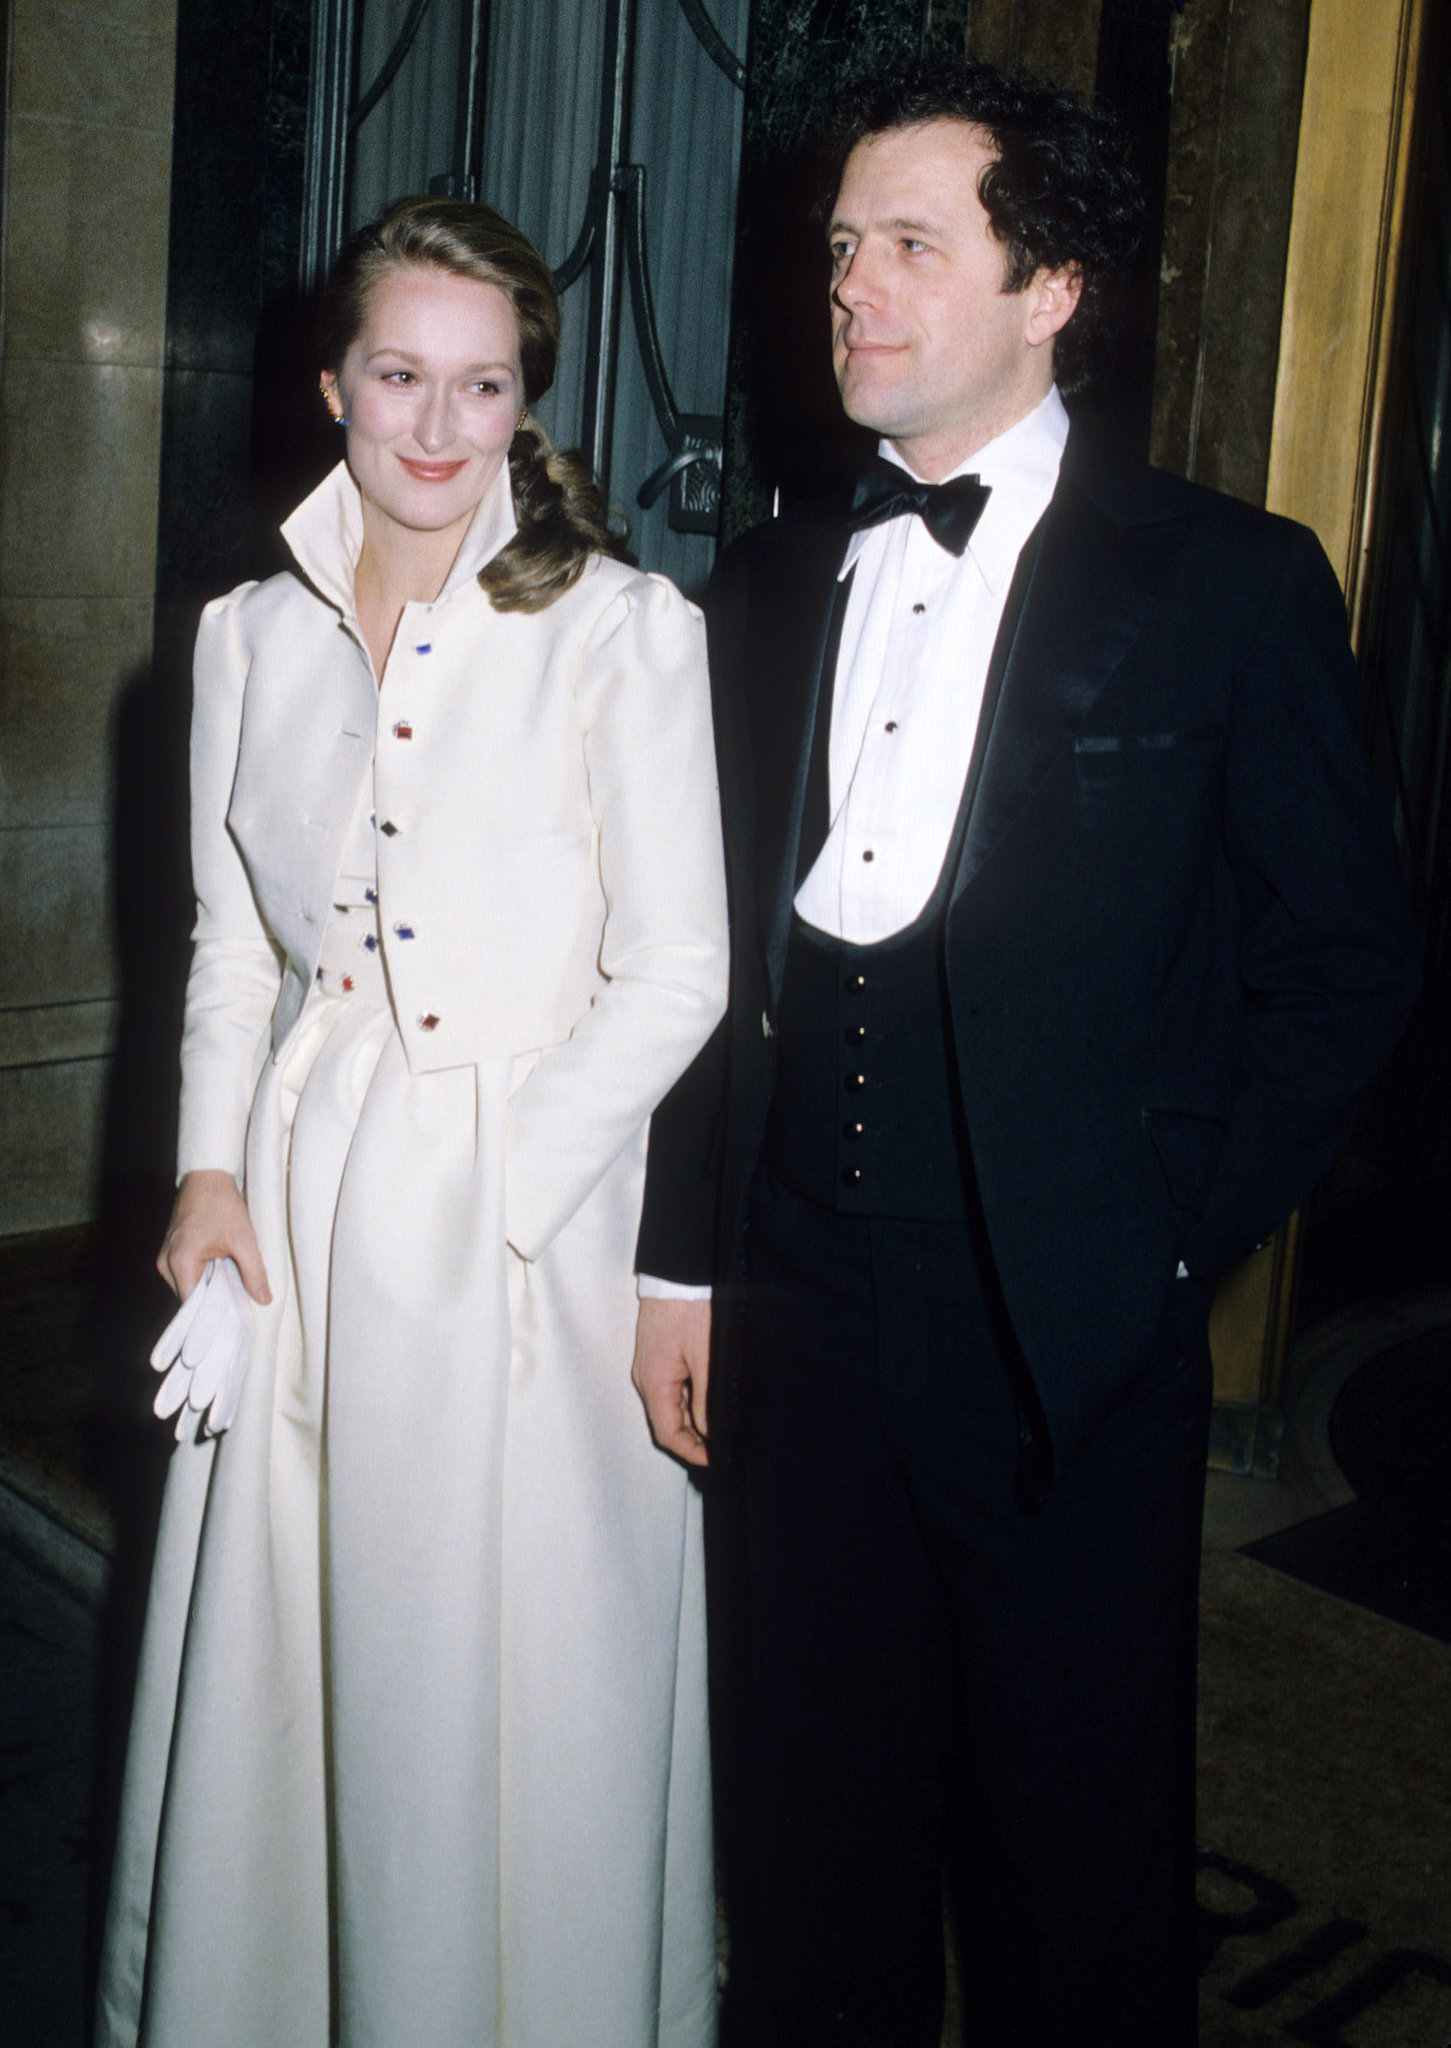 Two years after tying the knot, Meryl and Don made a glamorous appearance in London.